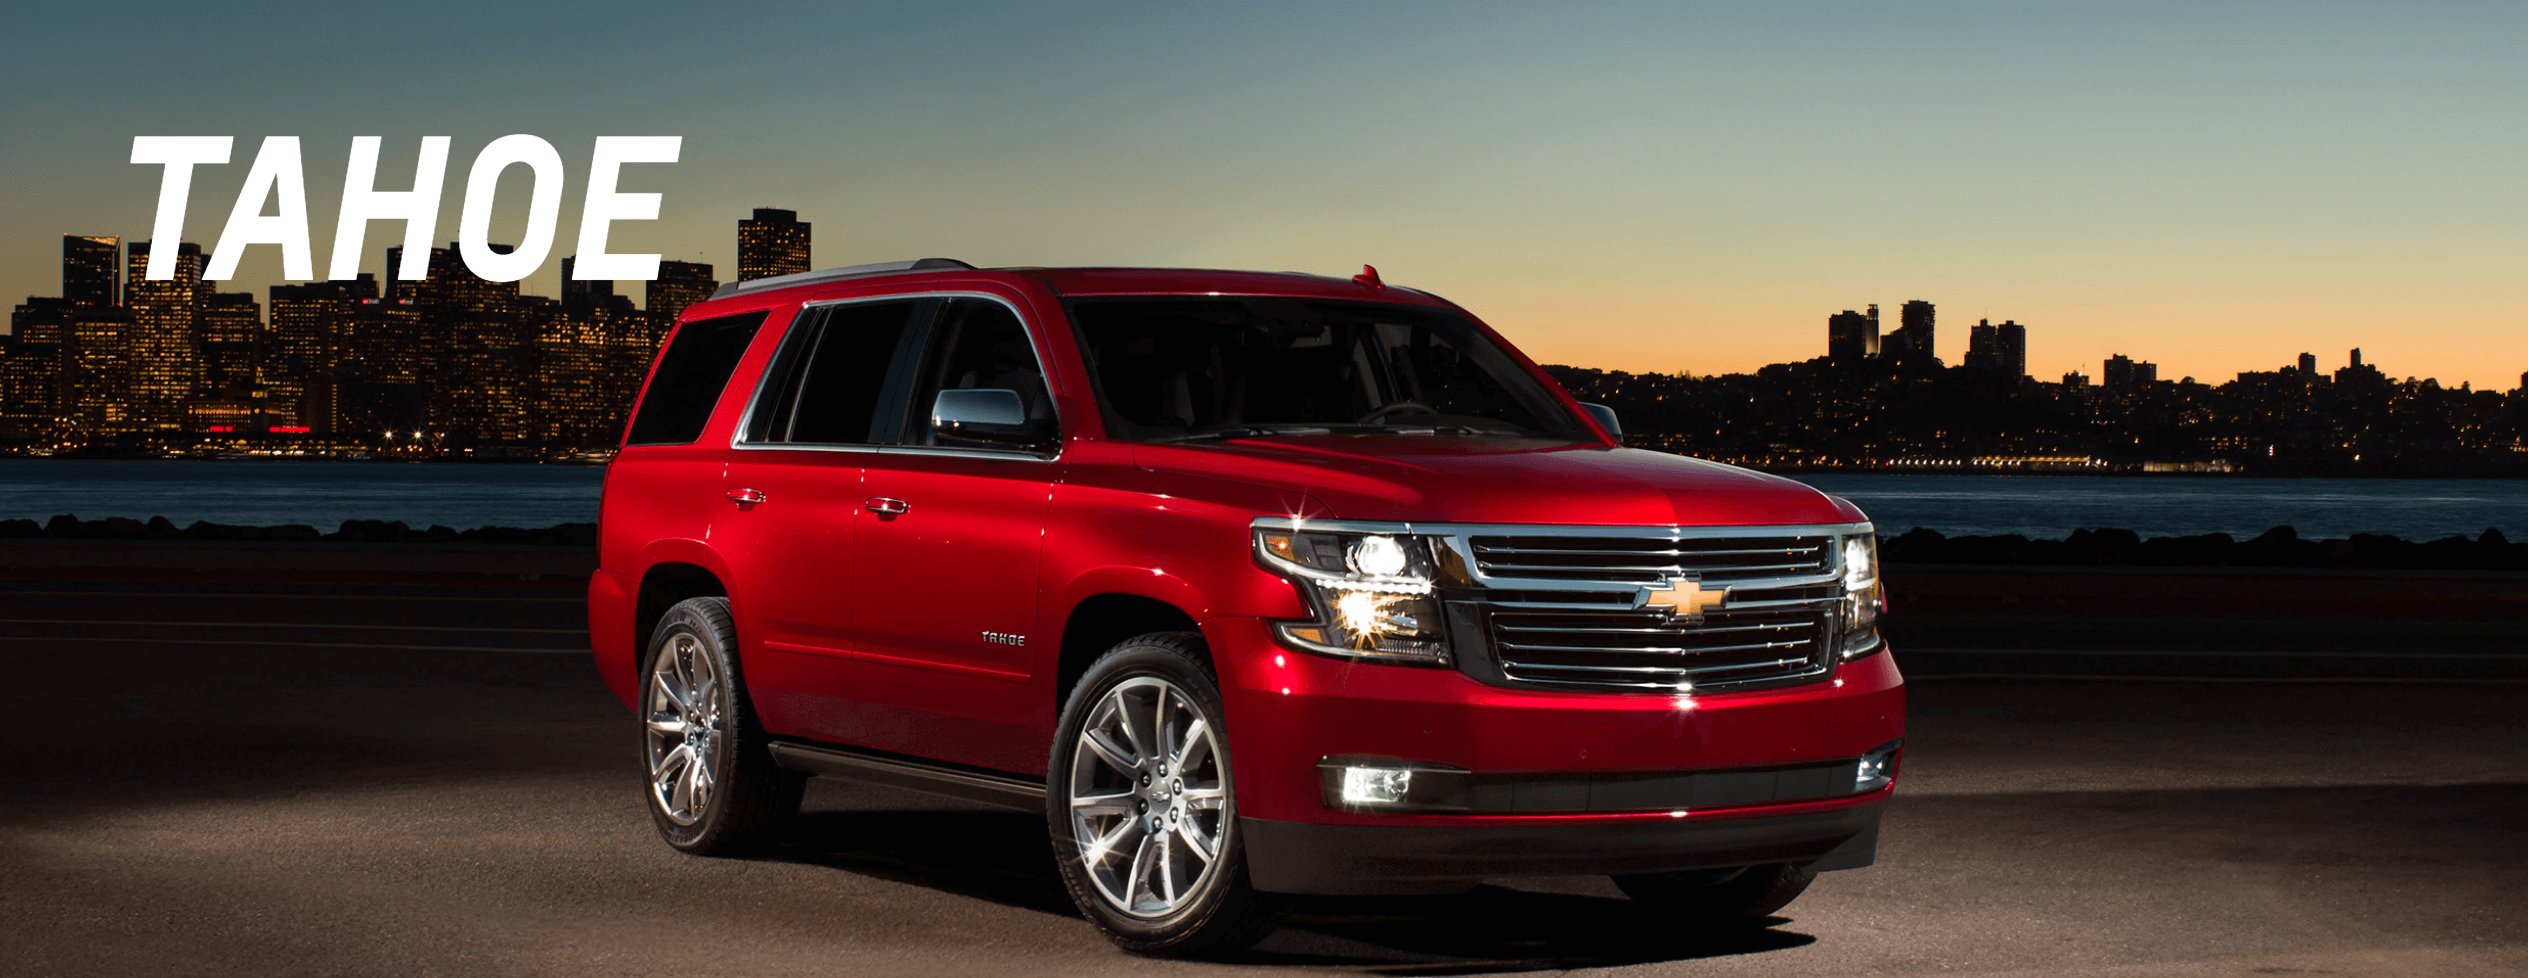 chevy tahoe vs ford expedition l midway auto dealerships. Black Bedroom Furniture Sets. Home Design Ideas